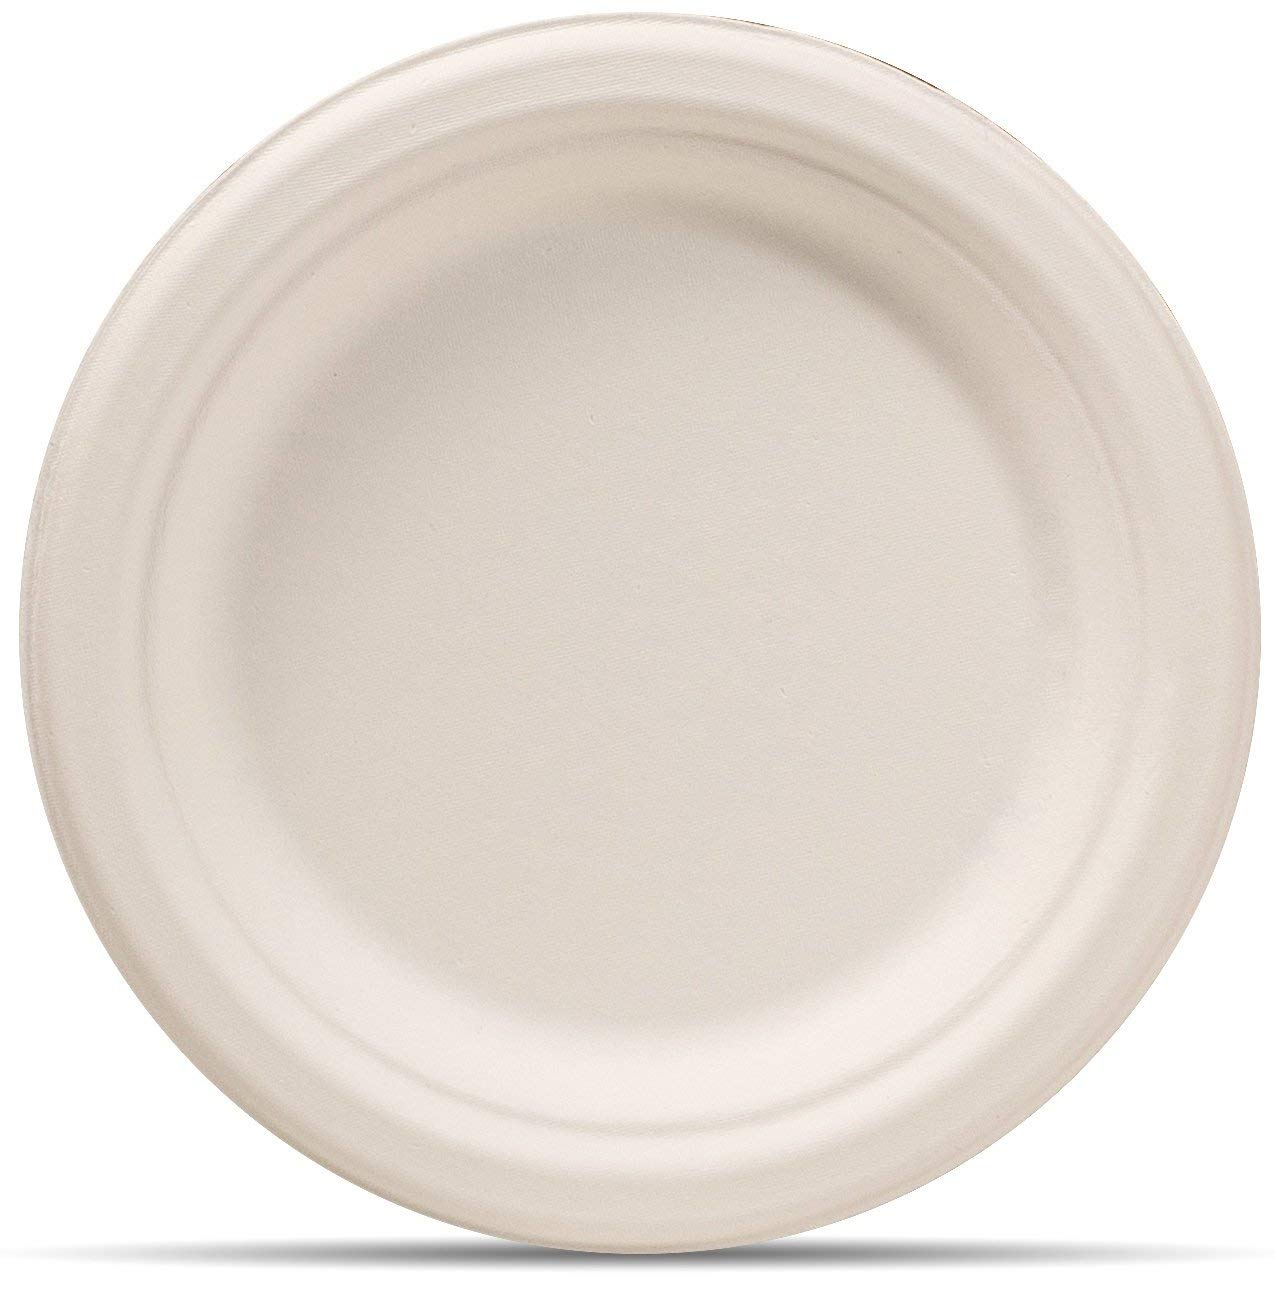 Biodegradable, Plant-Based, Round Plates 50 dinner plates and 50 small dessert plates, wheat straw fiber bagasse (sugarcane)